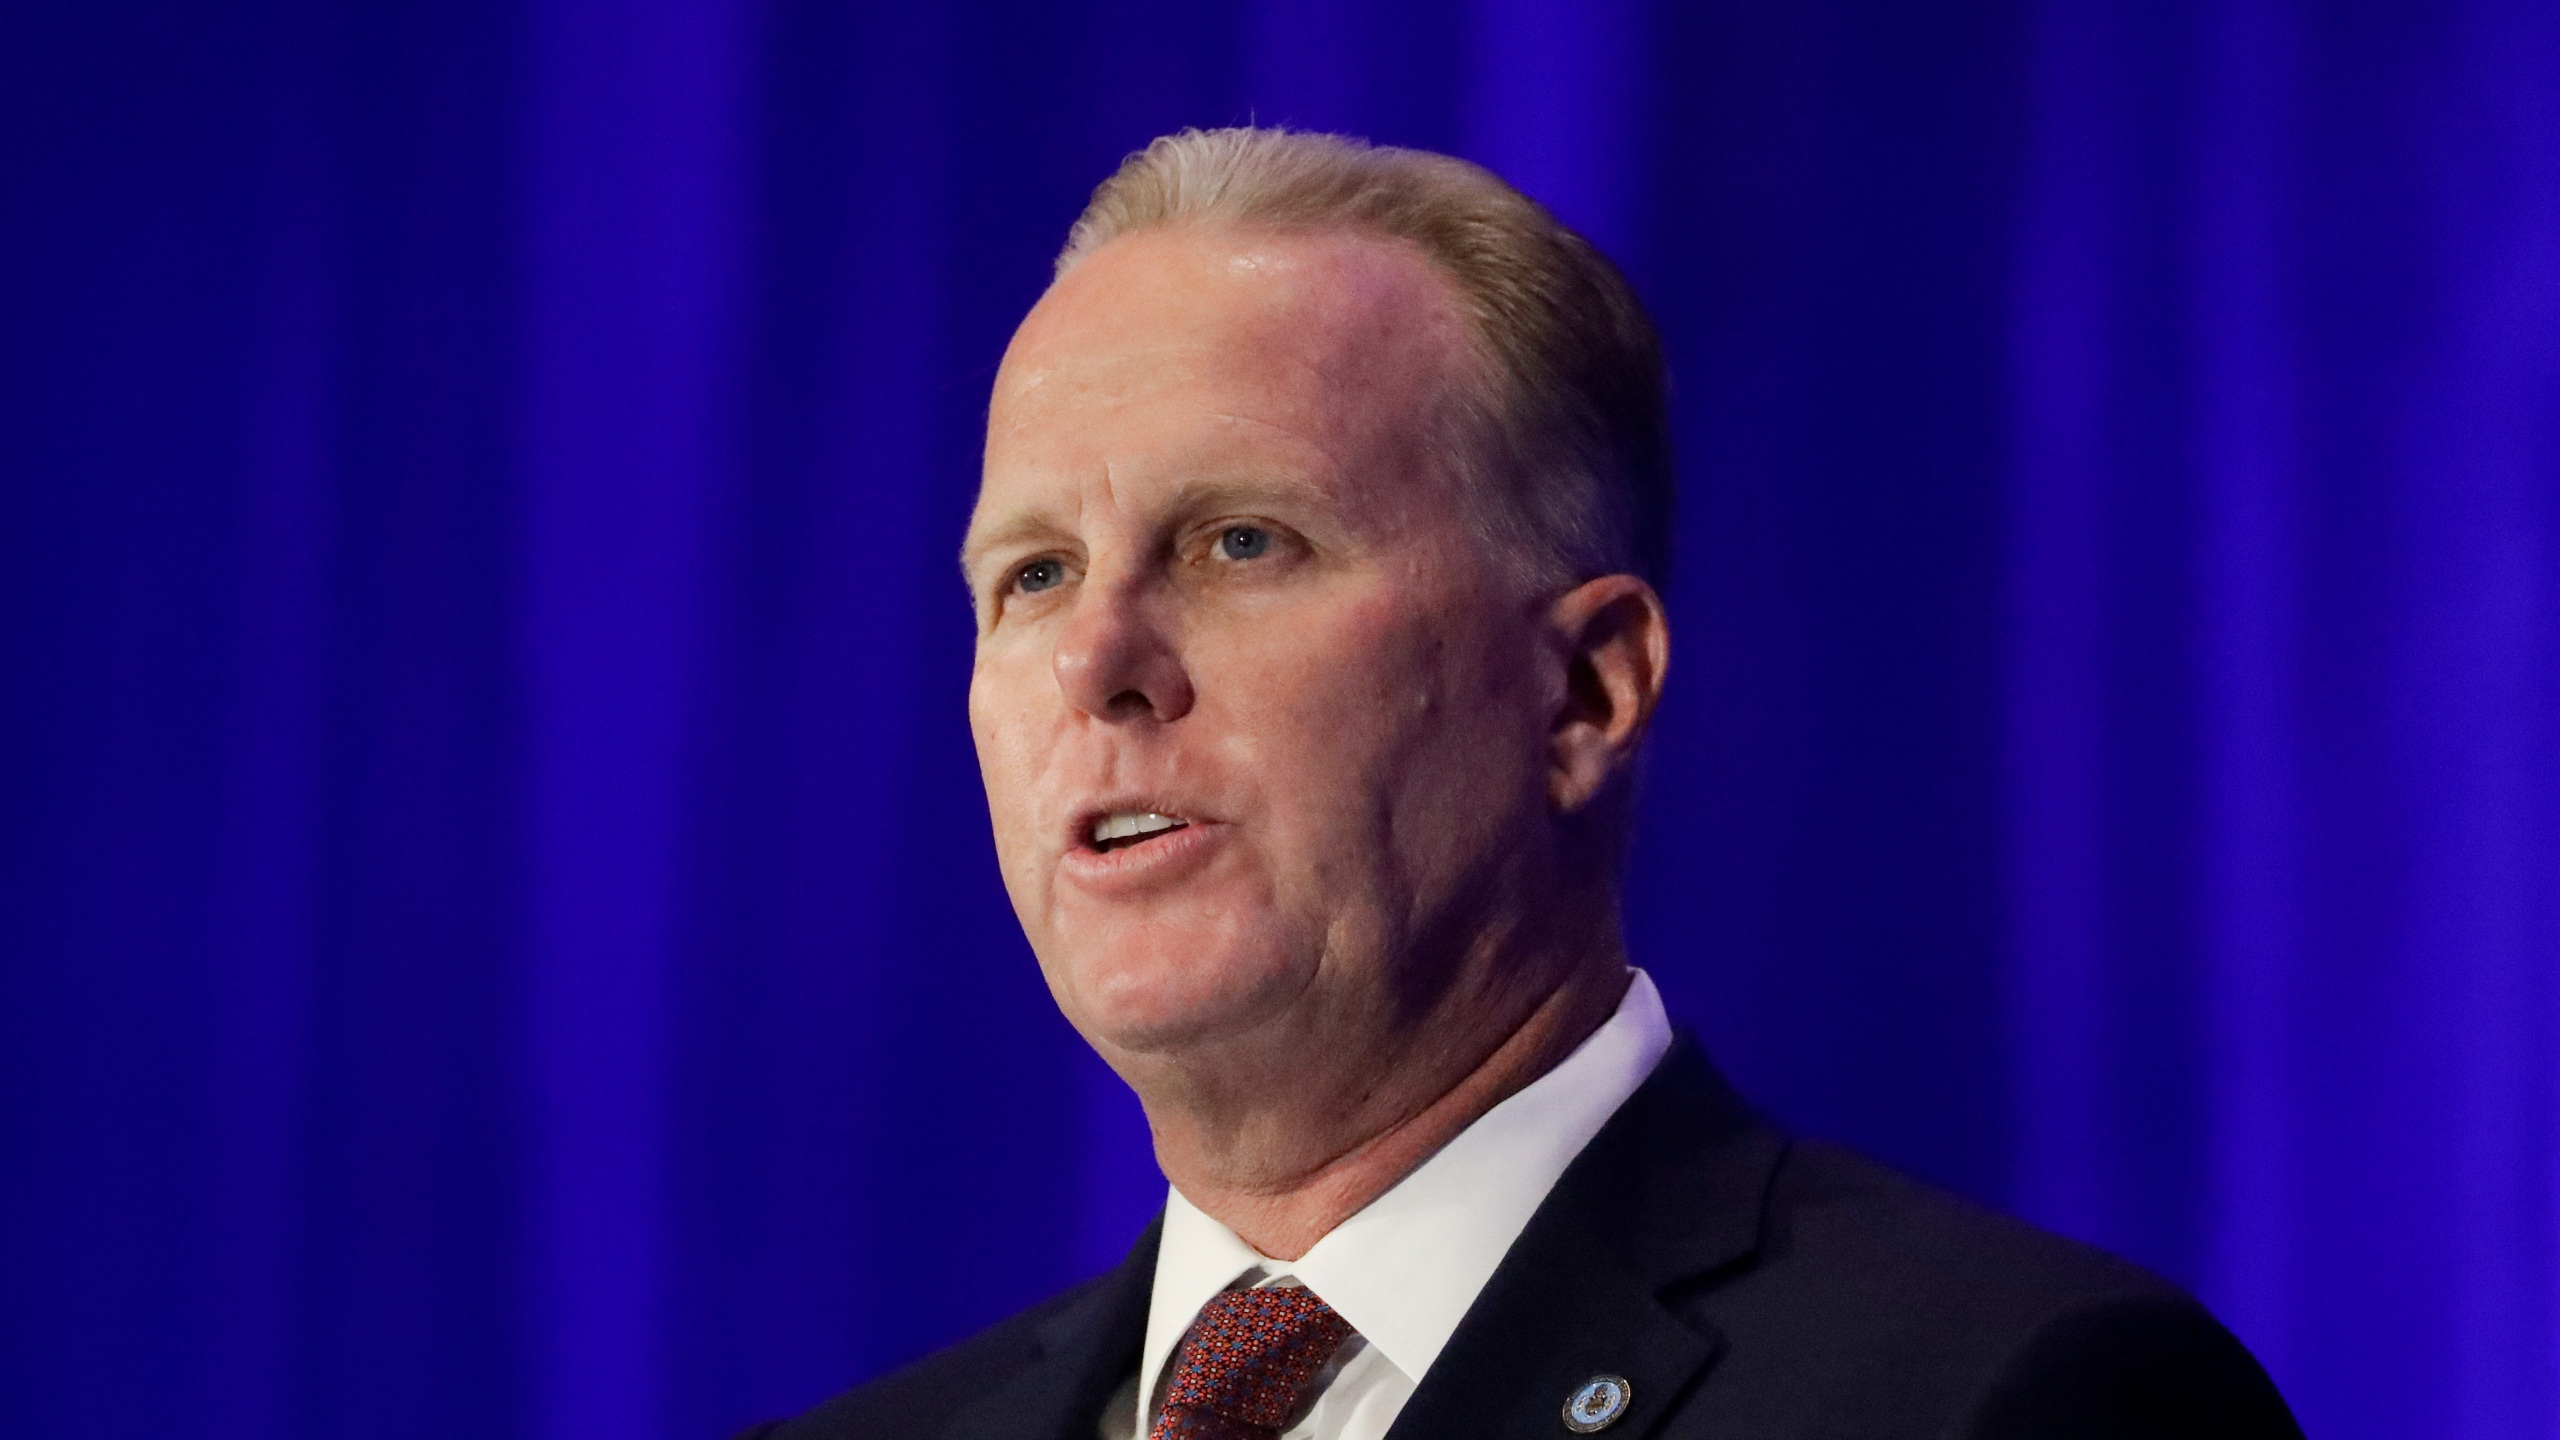 In this Sept. 7, 2019, file photo, San Diego Mayor Kevin Faulconer speaks during the California GOP fall convention in Indian Wells, Calif. (AP Photo/Chris Carlson, File)